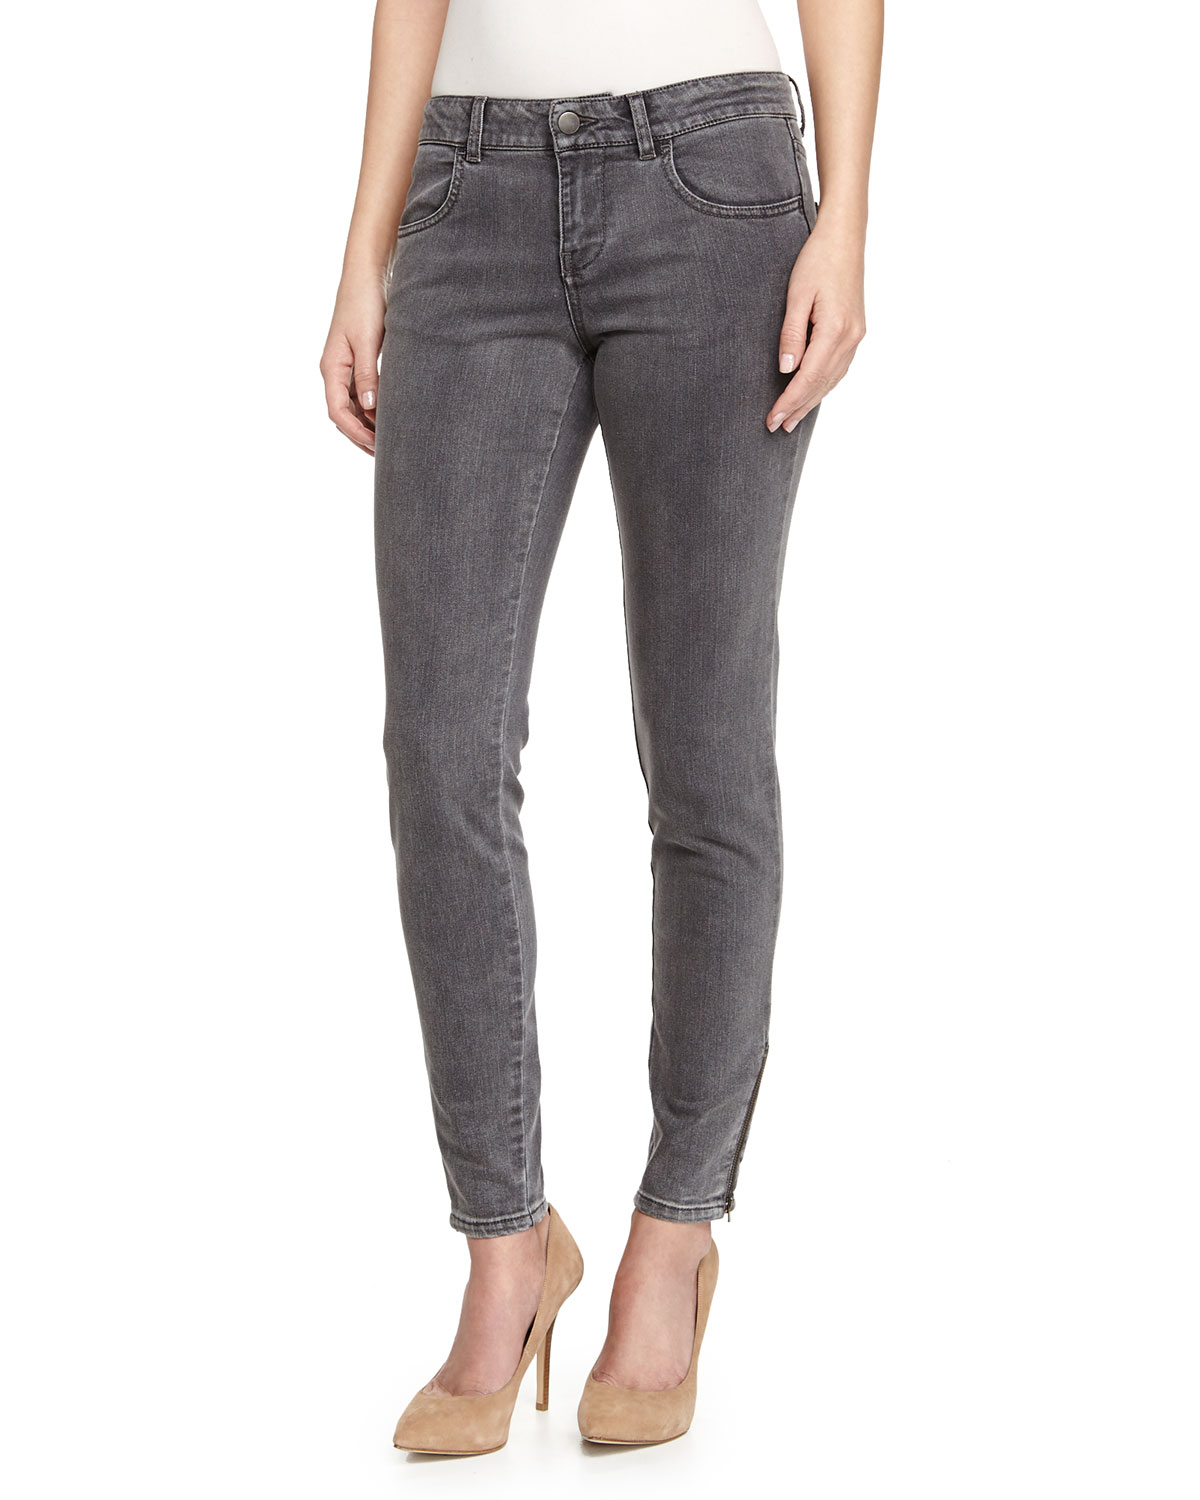 slim-fit jeans - Grey Stella McCartney 2018 New Cheap Price 2018 Newest For Sale Sale Pictures 100% Guaranteed Supply Online AFCdS